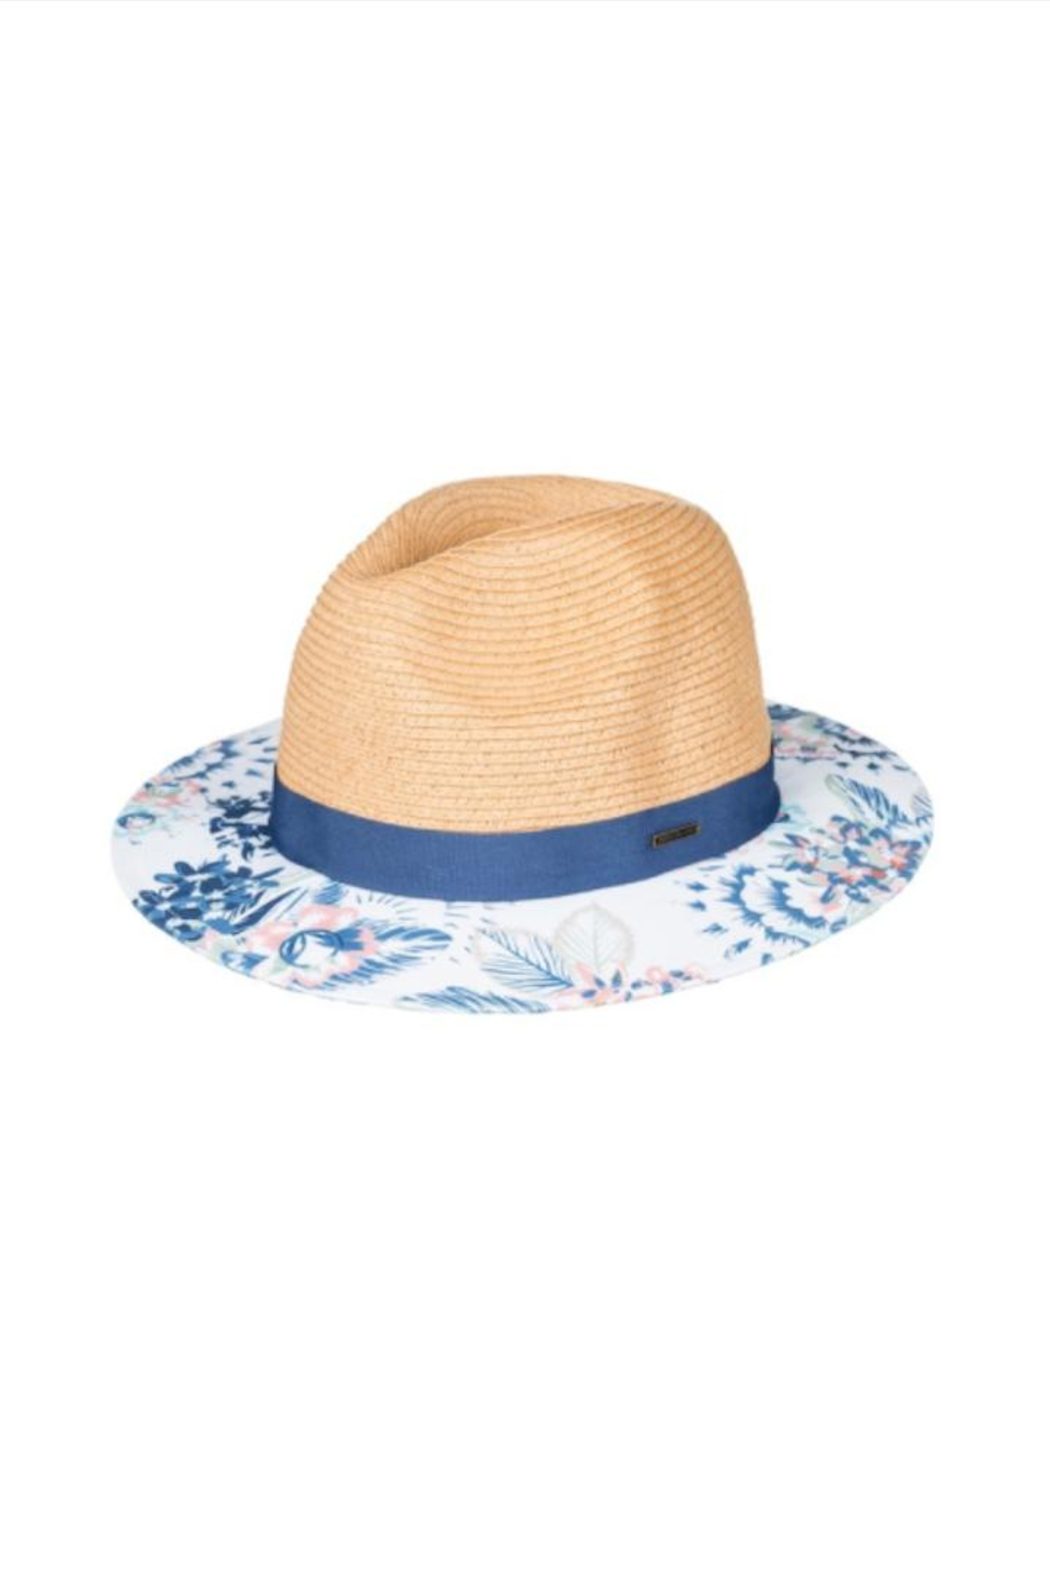 Roxy Floral Fedora Hat from Oregon by Patina Soul — Shoptiques cc656124a3a